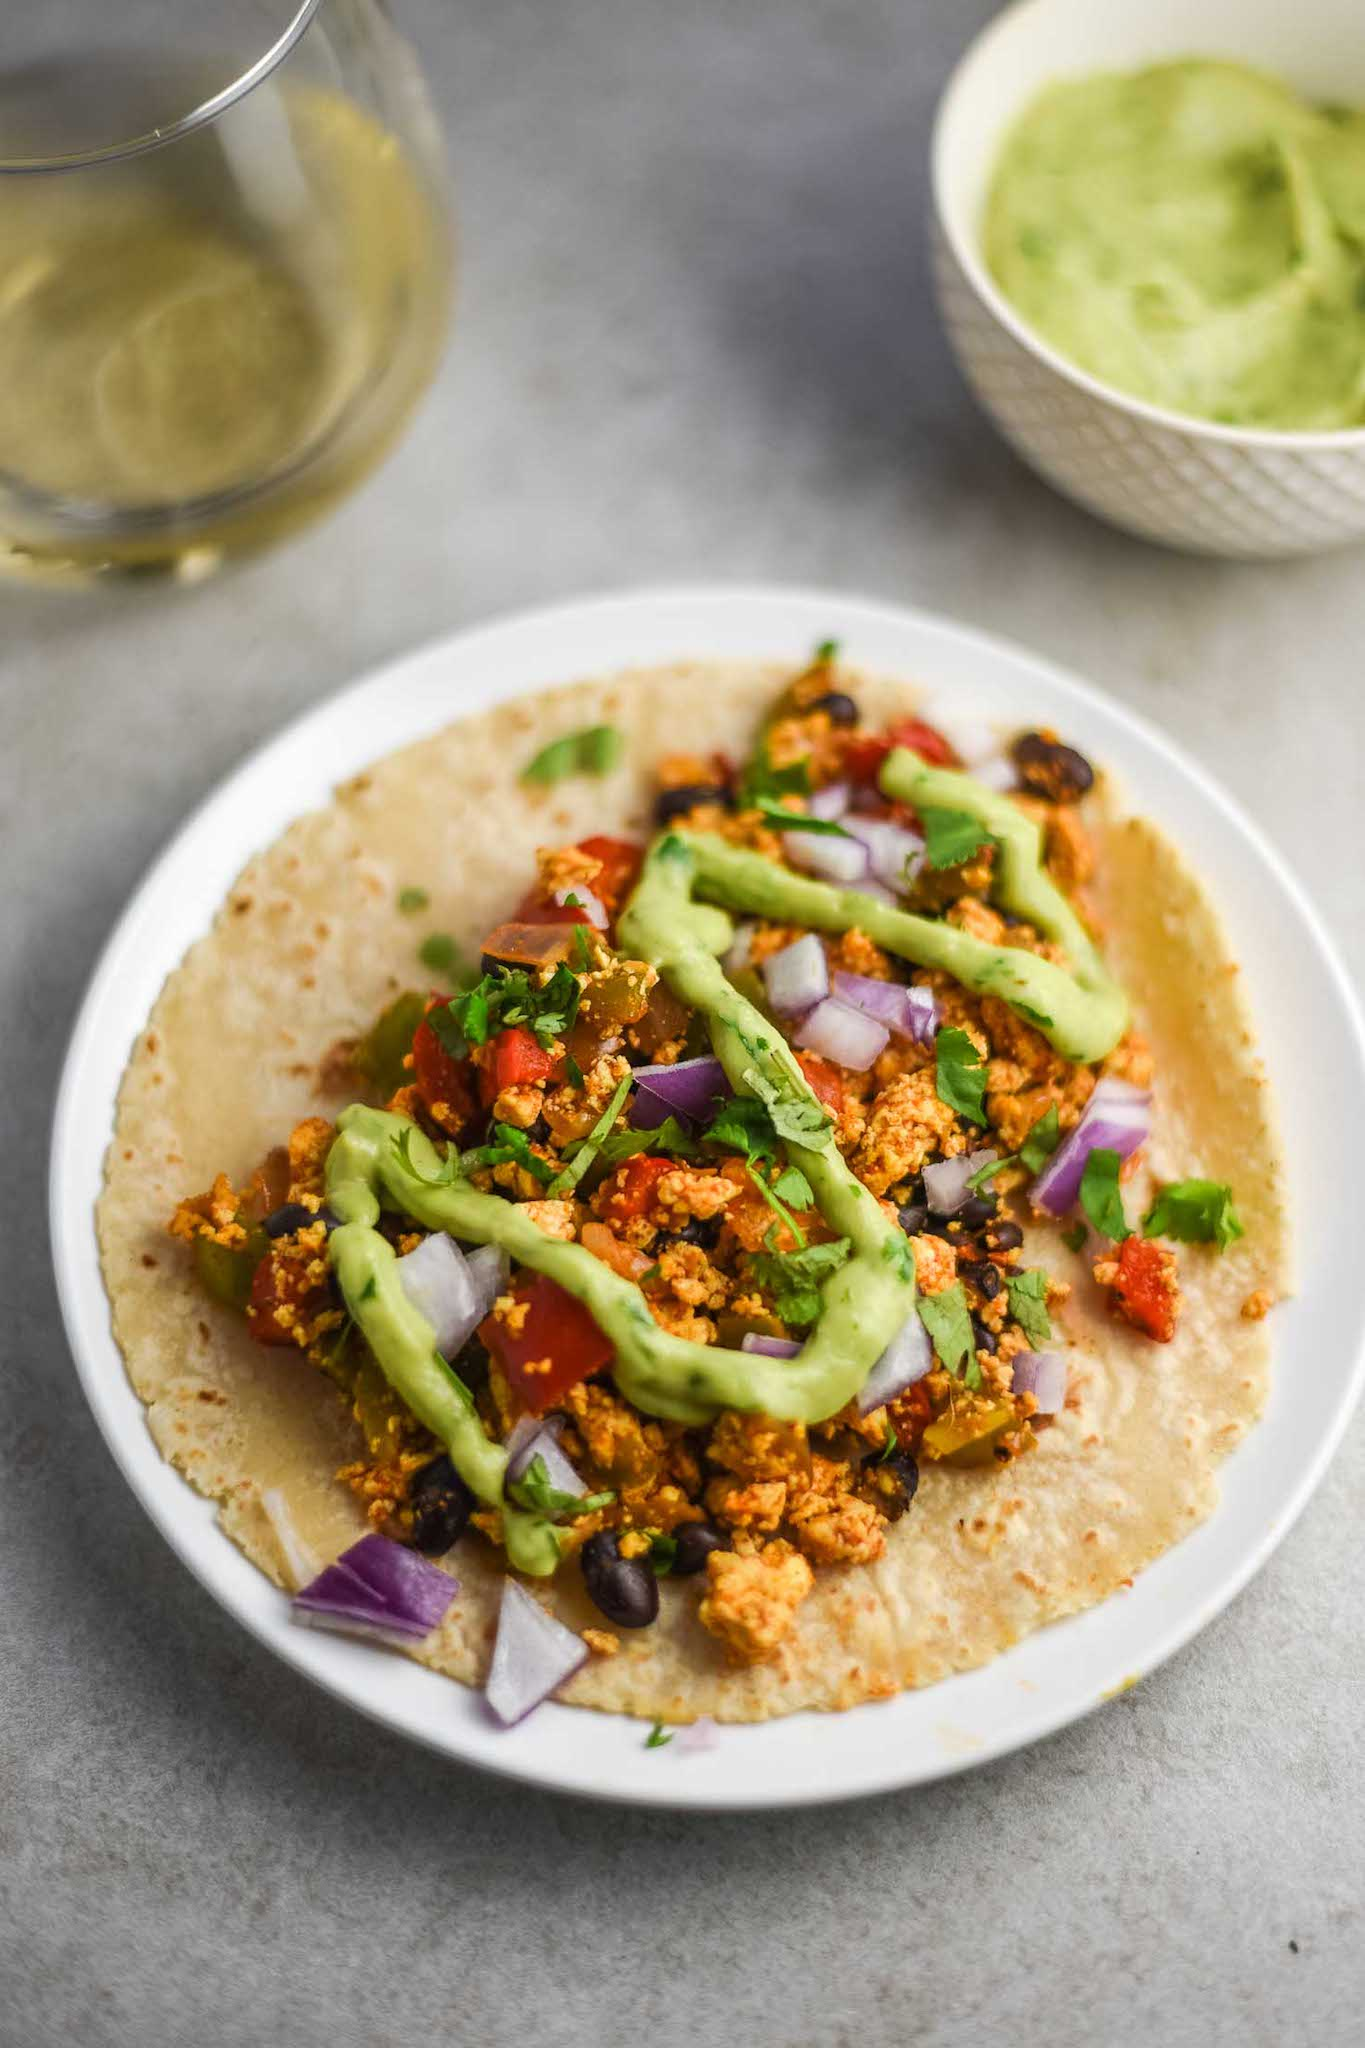 Healthy Vegan Breakfast Recipes, Tacos